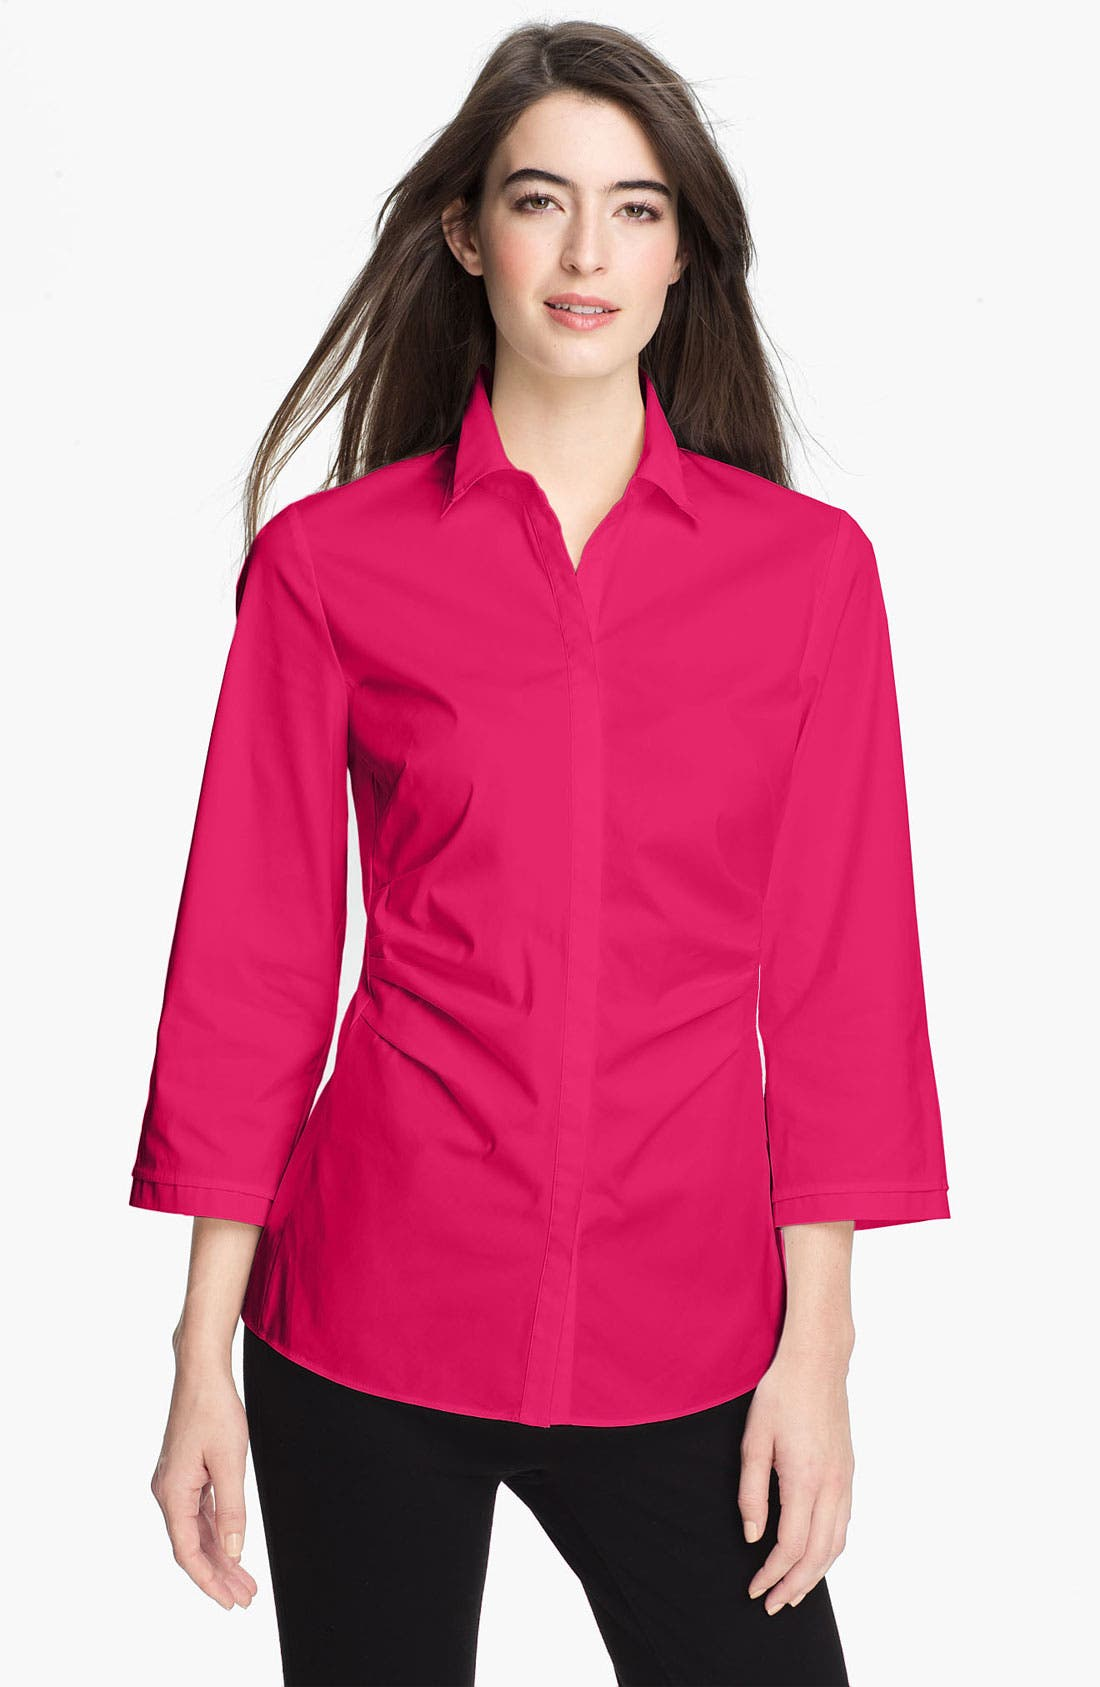 Alternate Image 1 Selected - Lafayette 148 New York 'Leigh' Blouse (Online Only)